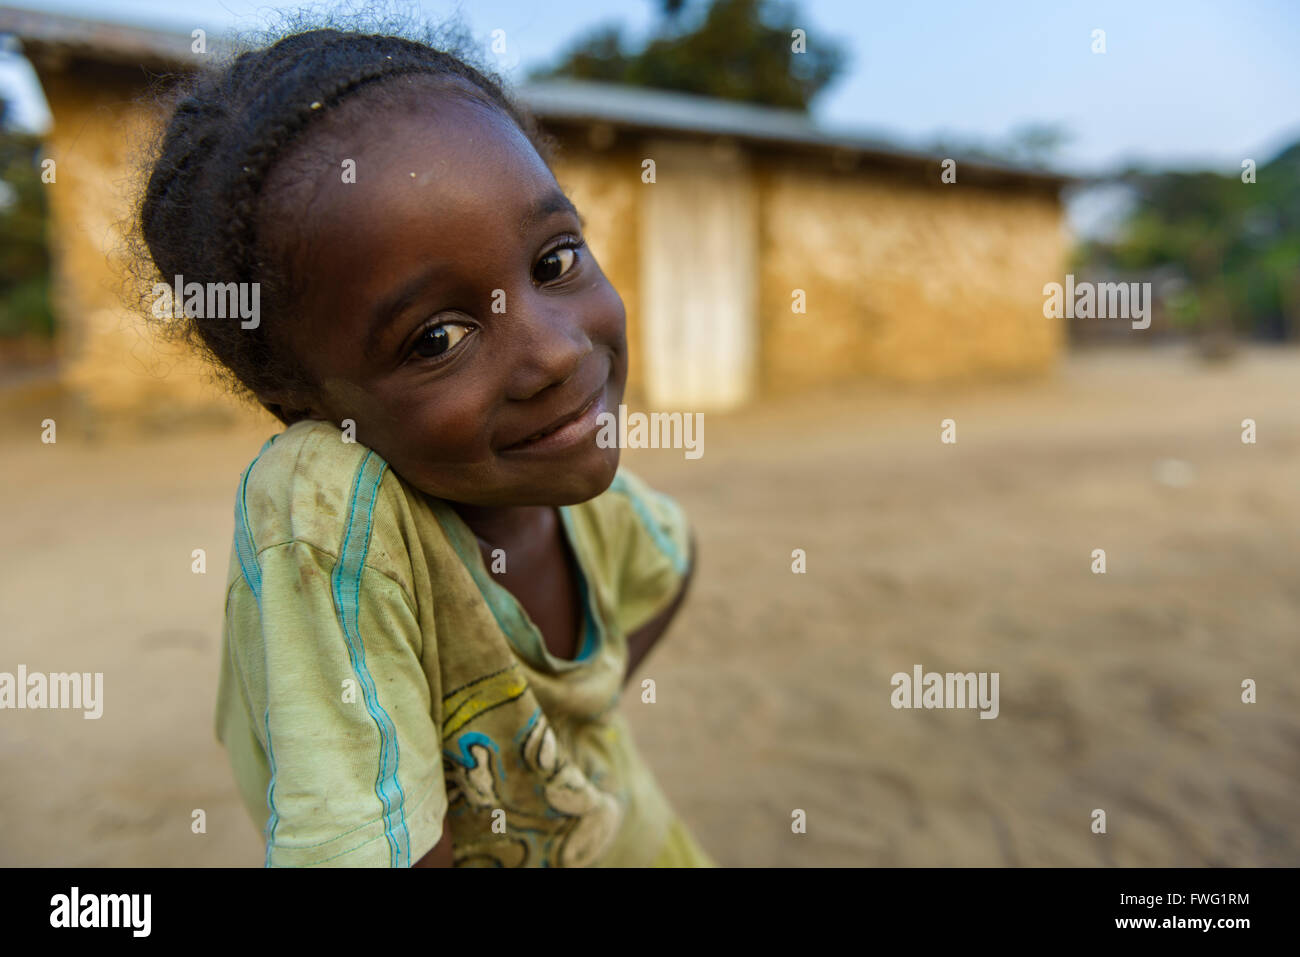 Girl Democratic Republic of Congo - Stock Image